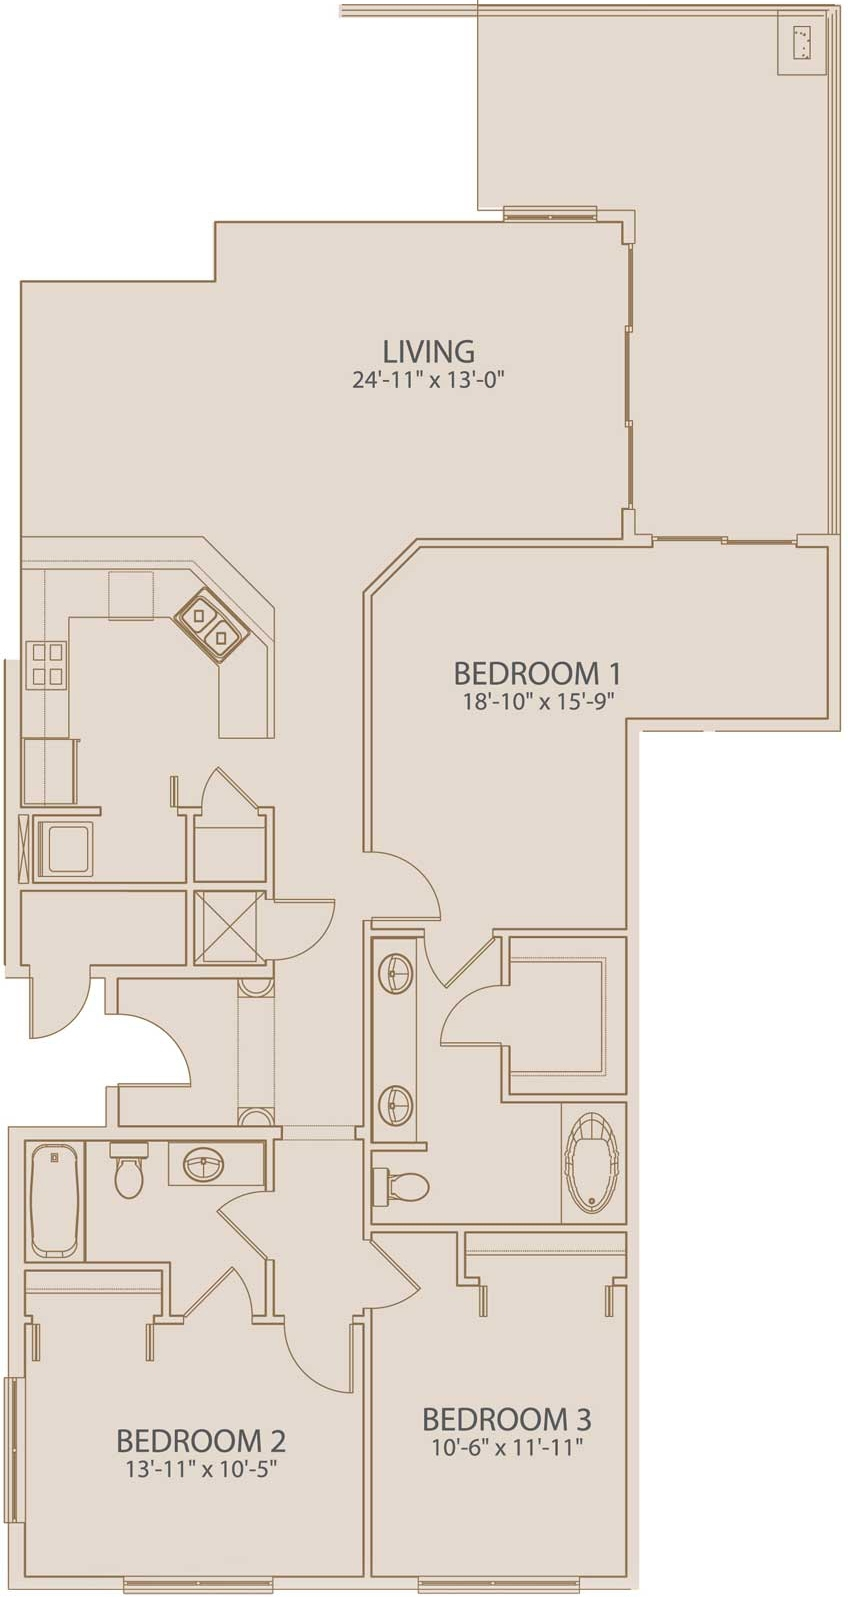 The layout of 803 Avalon